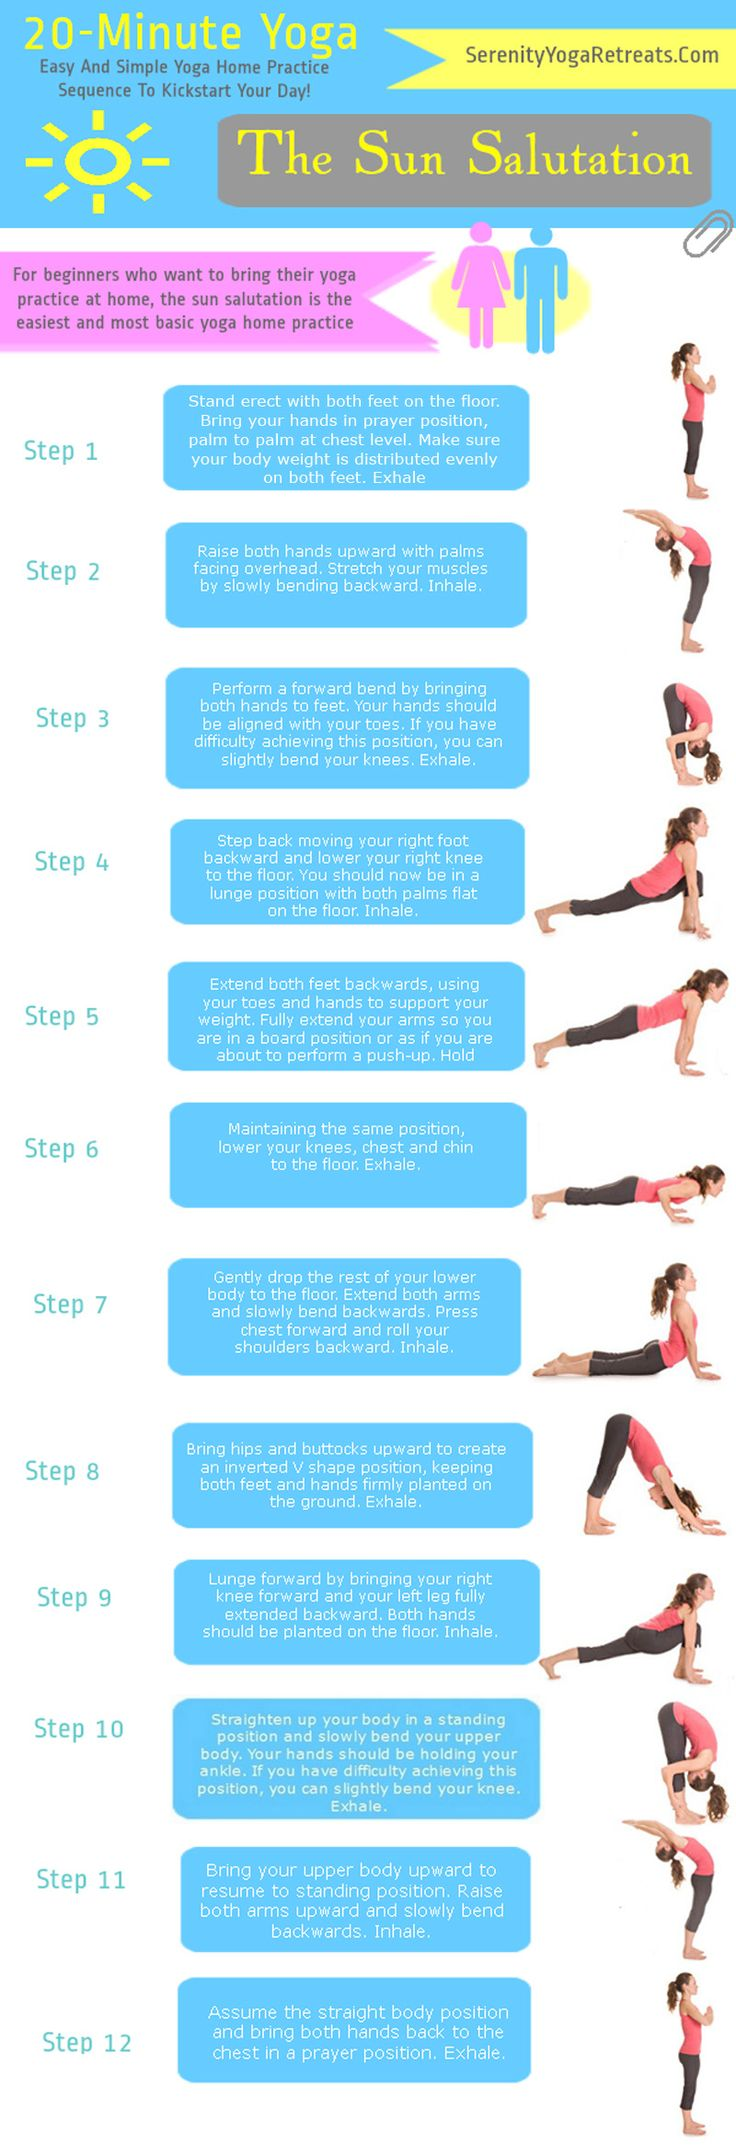 Yoga For Beginners -- The Sun Salutation    Let's Kickstart our day with an ...